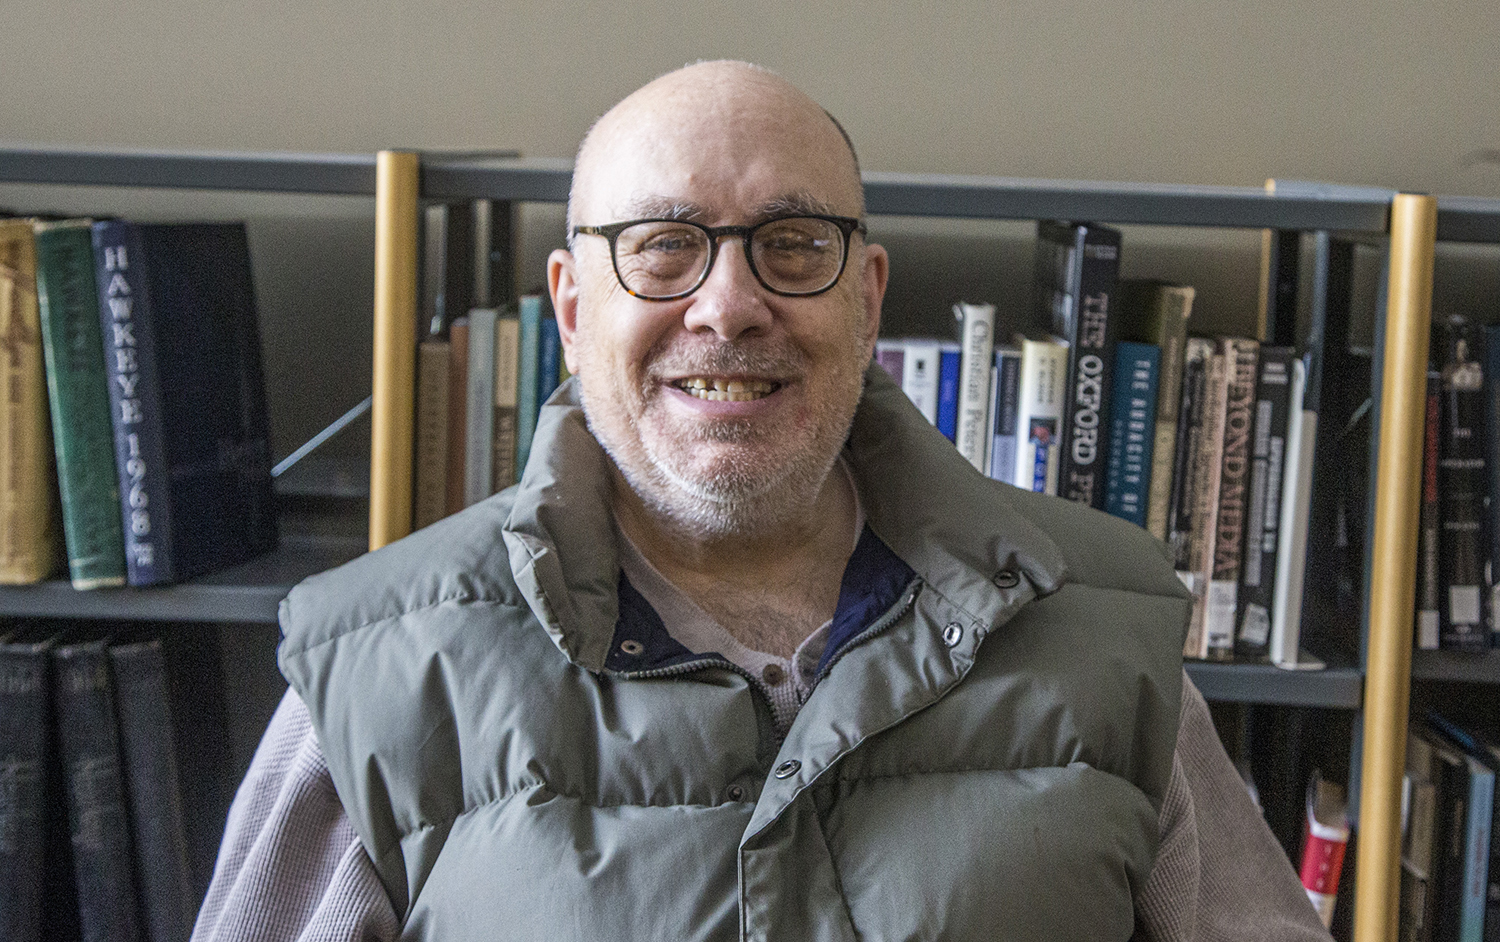 In Adler Journalism Building on Tuesday, Oct. 15, 2019 poet Steven Anderson Author of Journal to Narayama and Love Poems poses for a photo. Steven currently is living in Iowa City where he enjoys writing from his home.